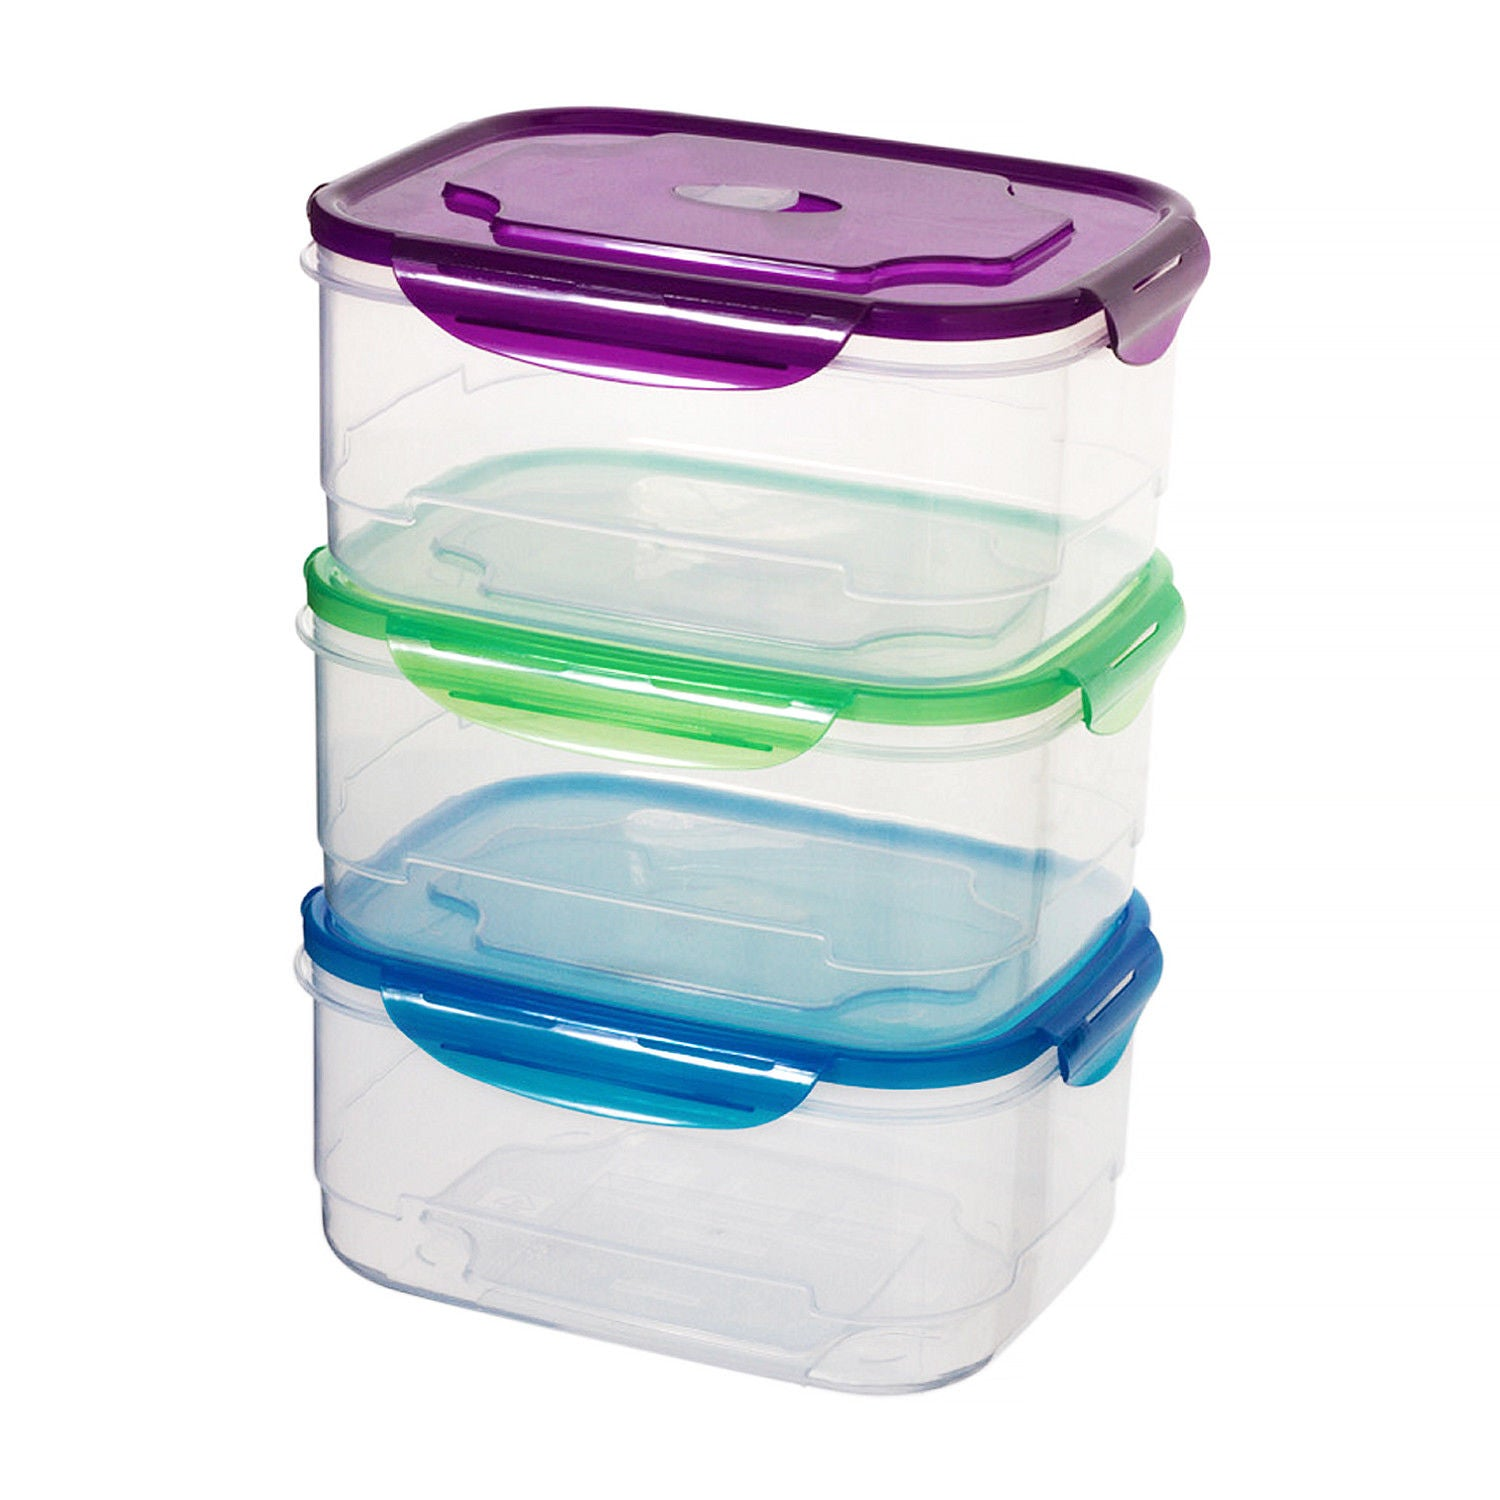 3 Pack Clip Lock Plastic Rectangle Storage Box - Airtight Large Food Containers